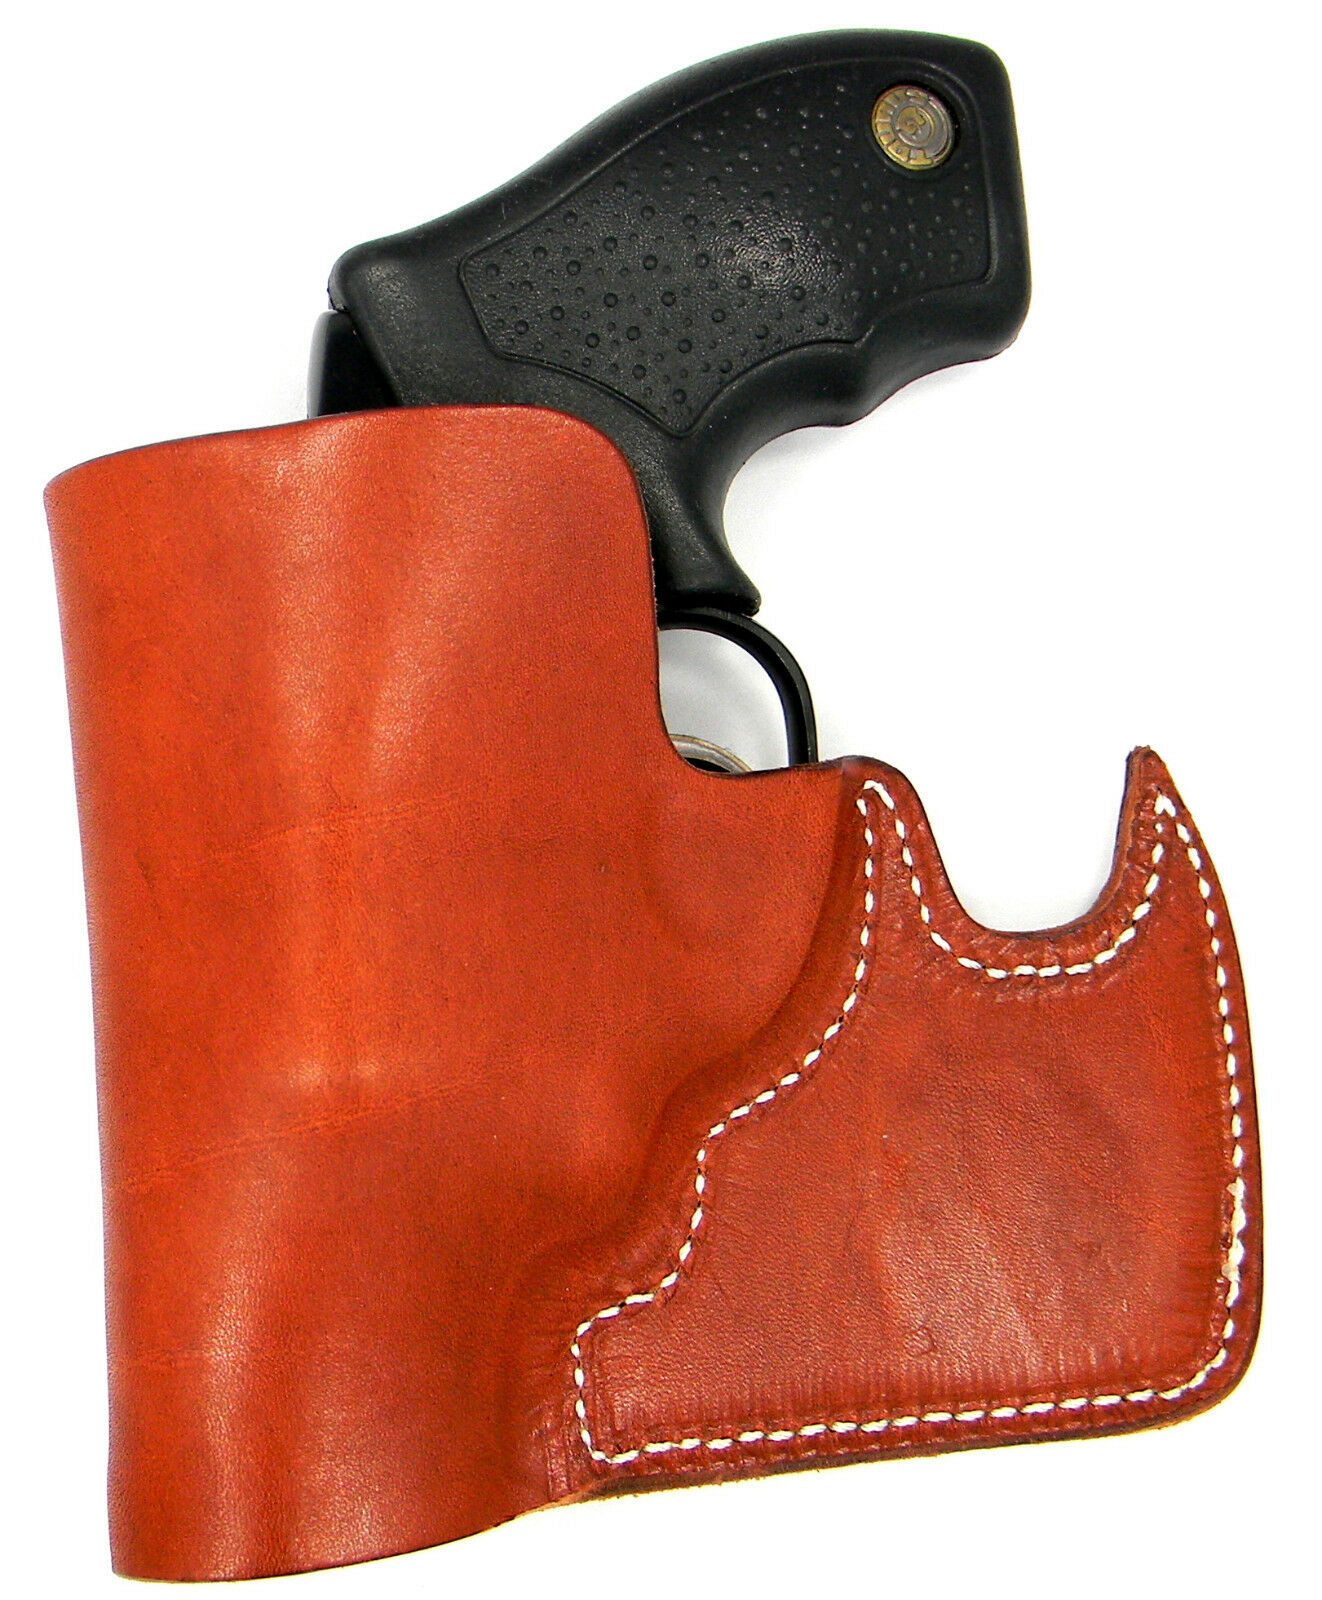 CEBECI FRONT POCKET BROWN LEATHER CCW CONCEALMENT HOLSTER 38 SPECIAL REVOLVER